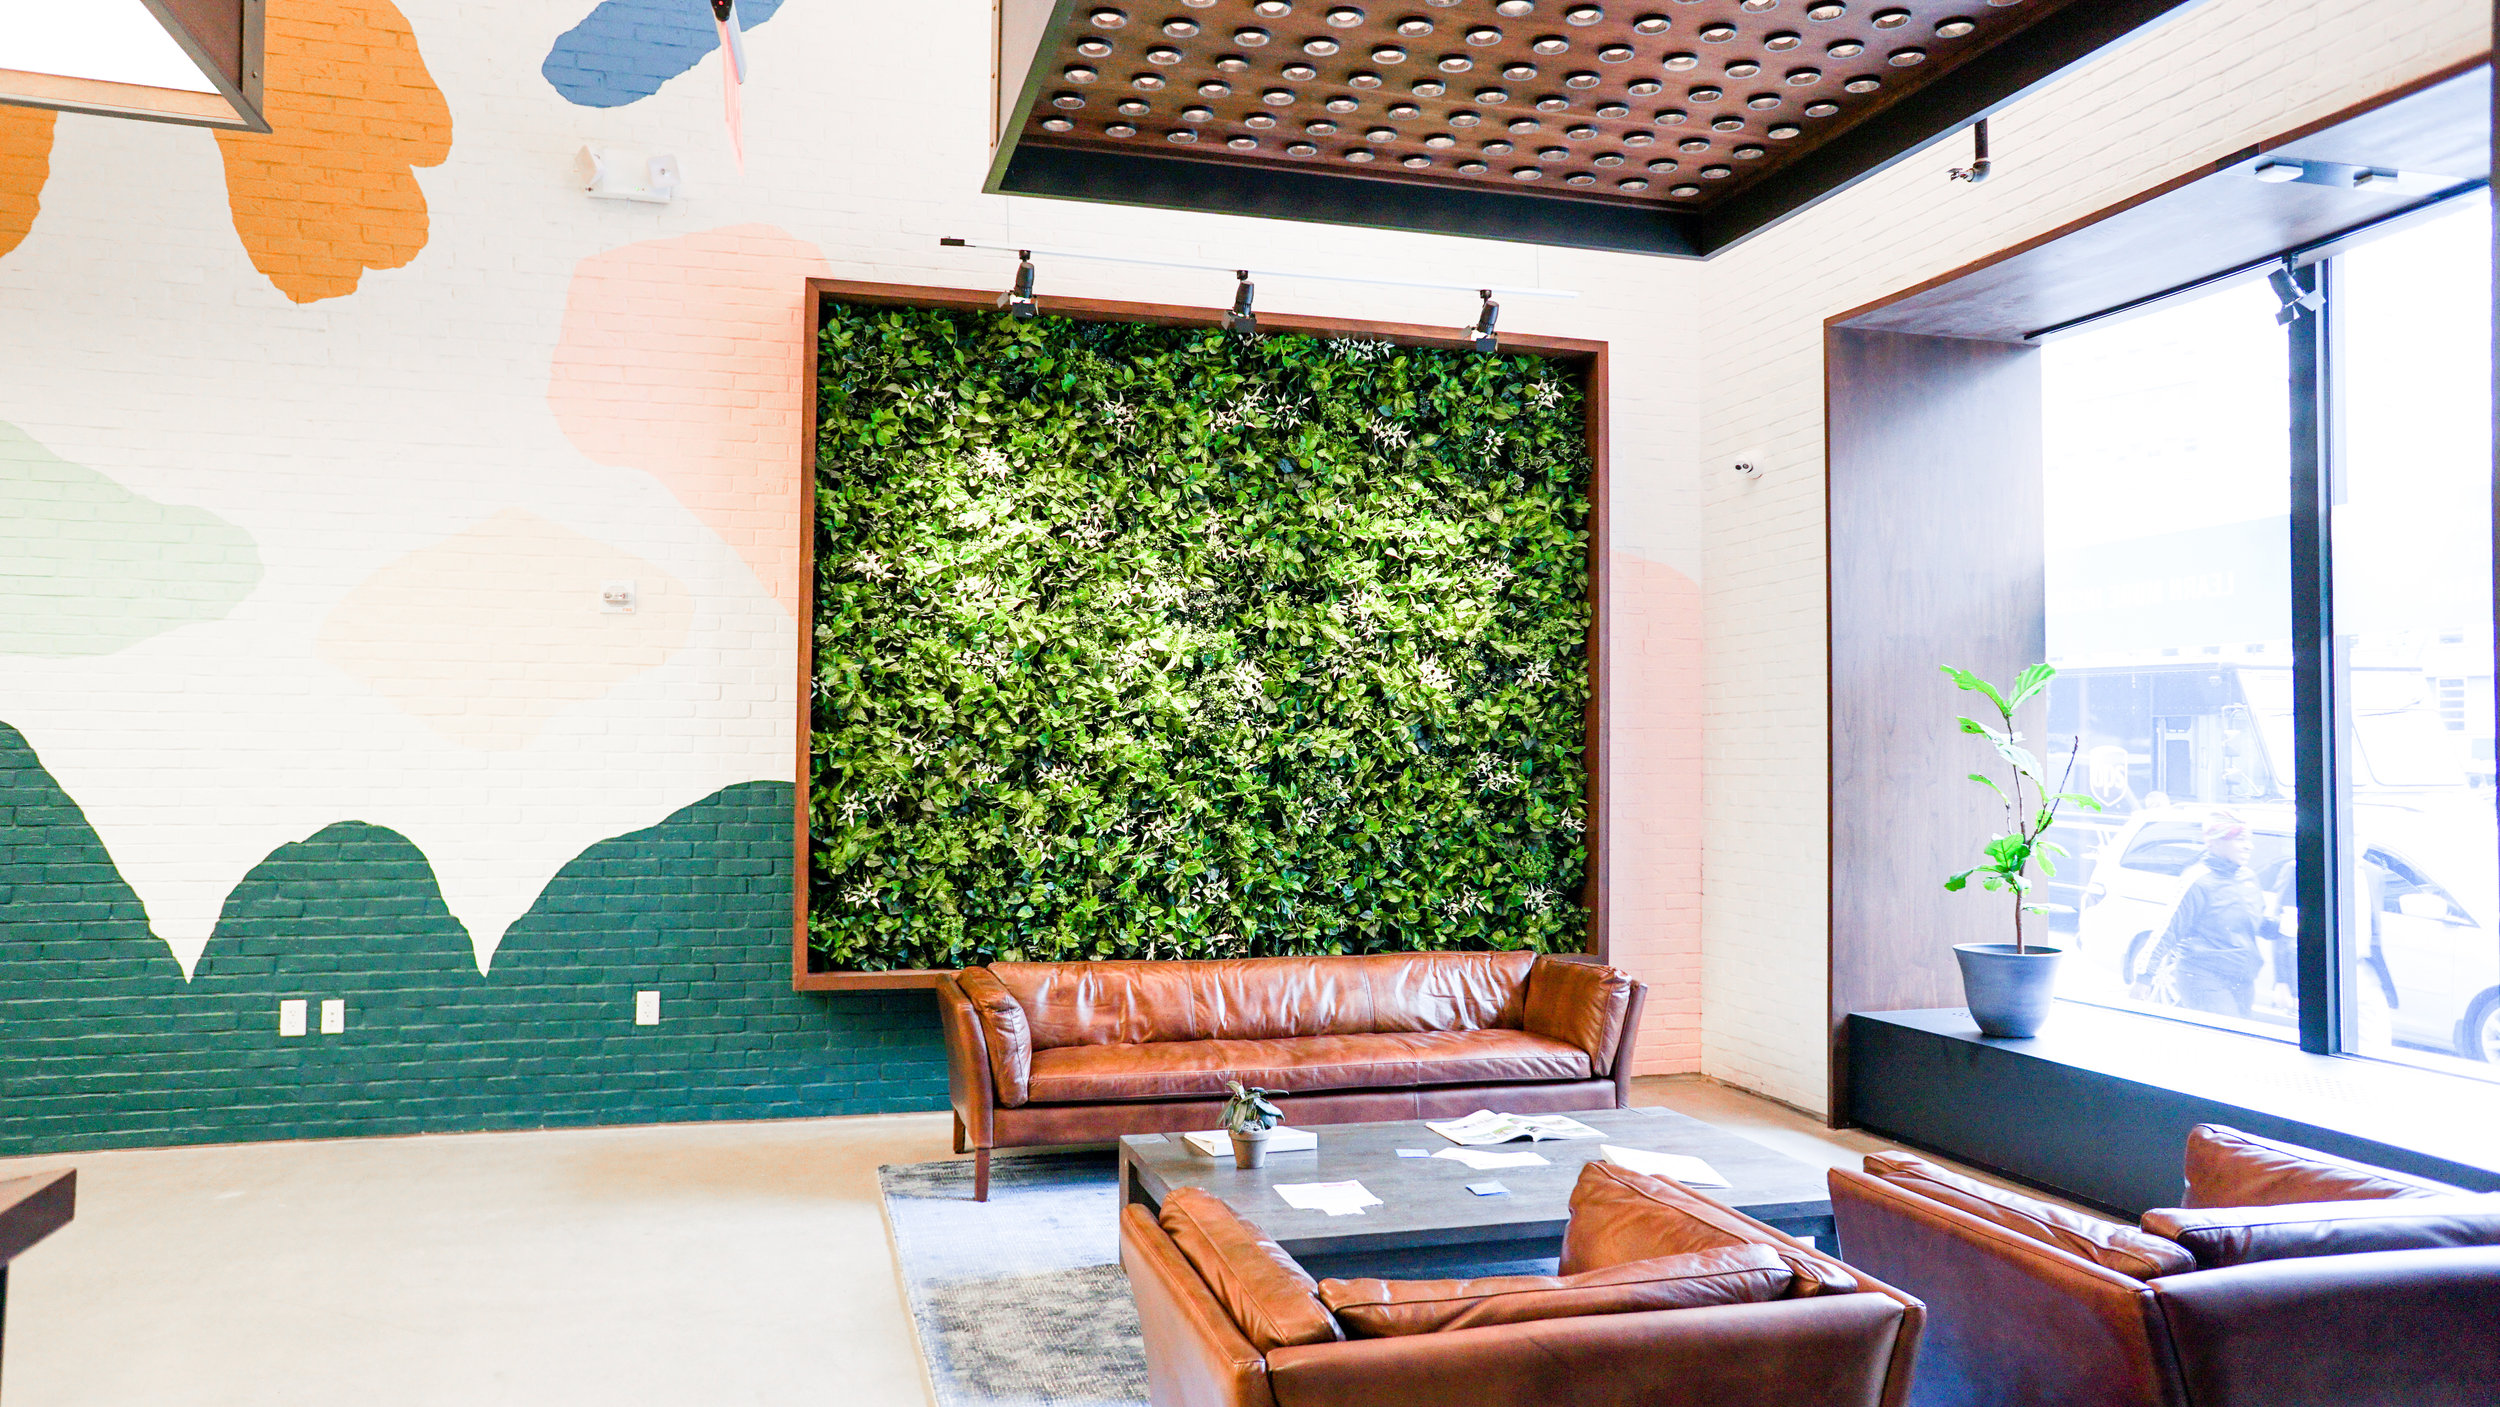 ALW in Lobby at Columbia Care, Brooklyn, NY  The lack of adequate lighting in the lobby of this natural wellness brand was not conducive to a live plant wall installation, but our Leafy artificial living wall panels worked perfectly.